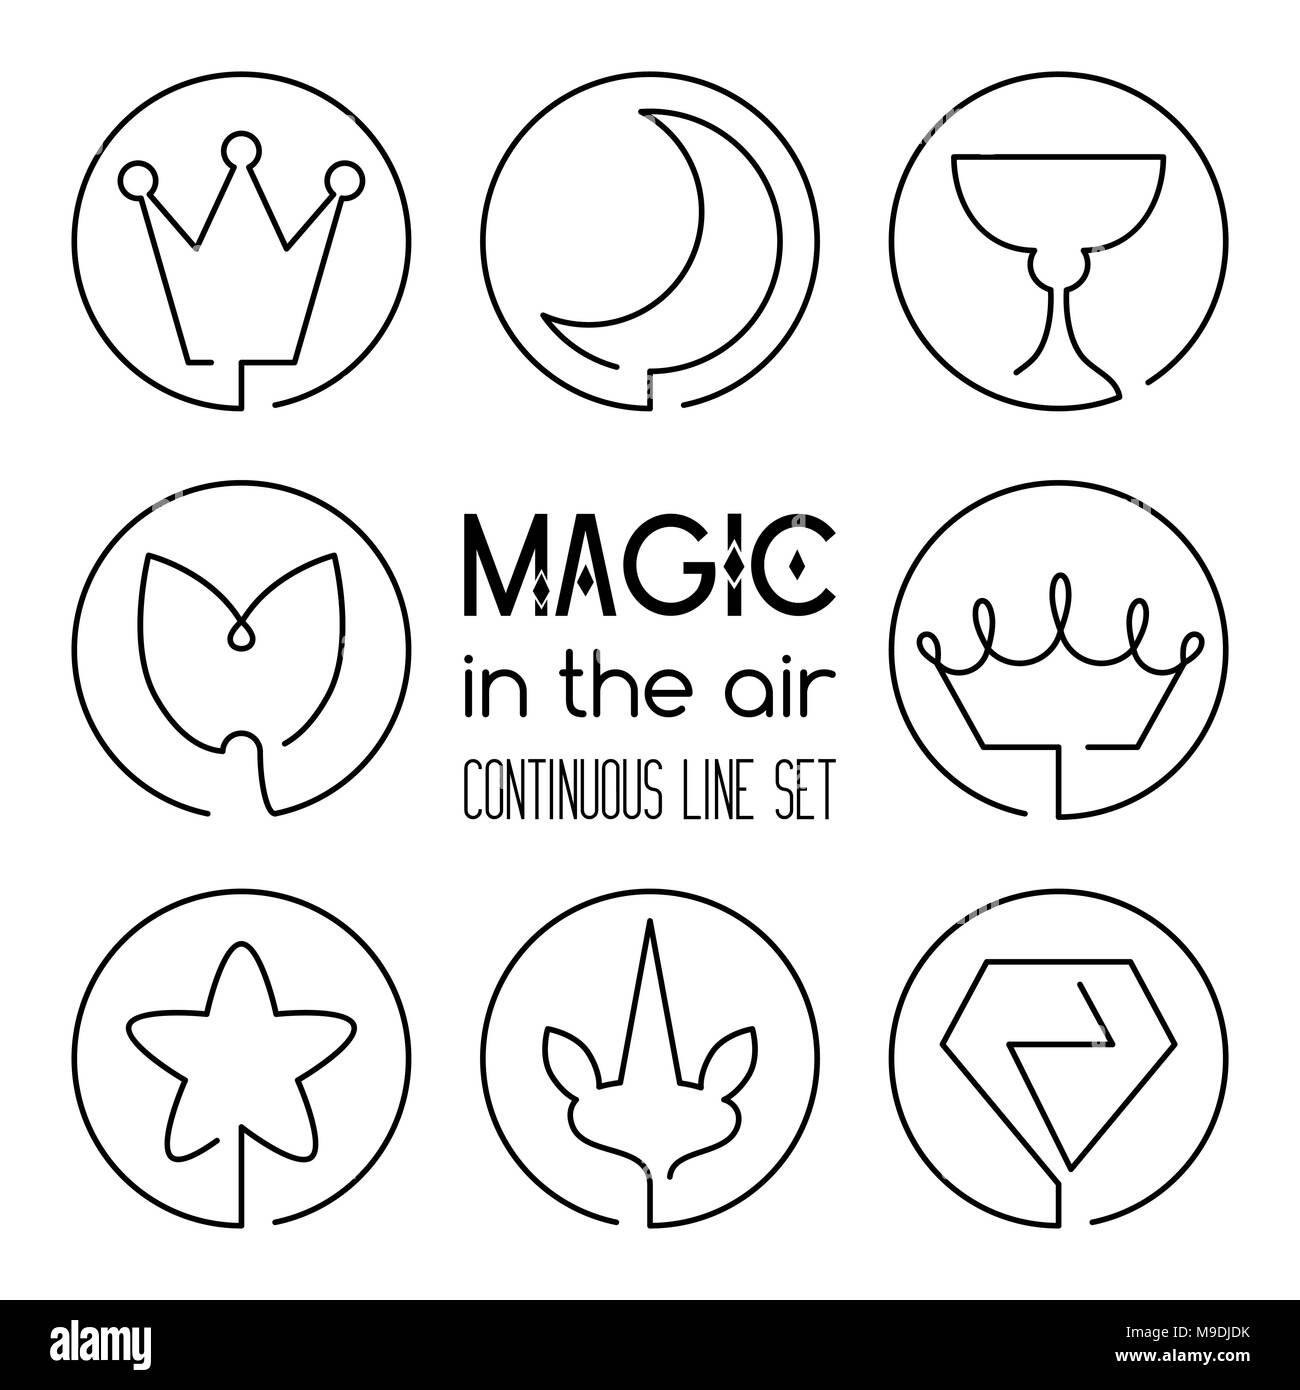 Set of magic fantasy continuous line art icons crown moon holy grail